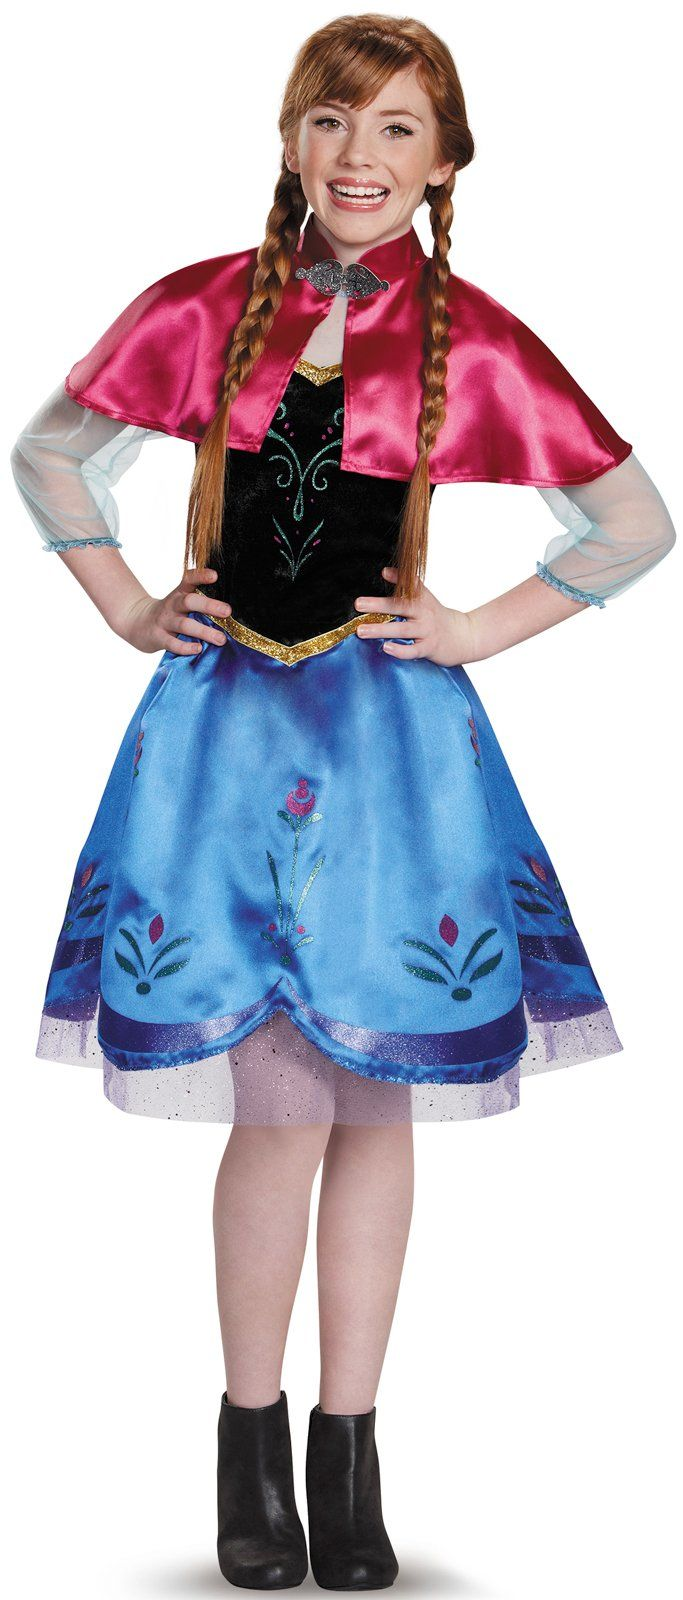 Frozen: Anna Traveling Gown Costume For Tweens from Buycostumes.com